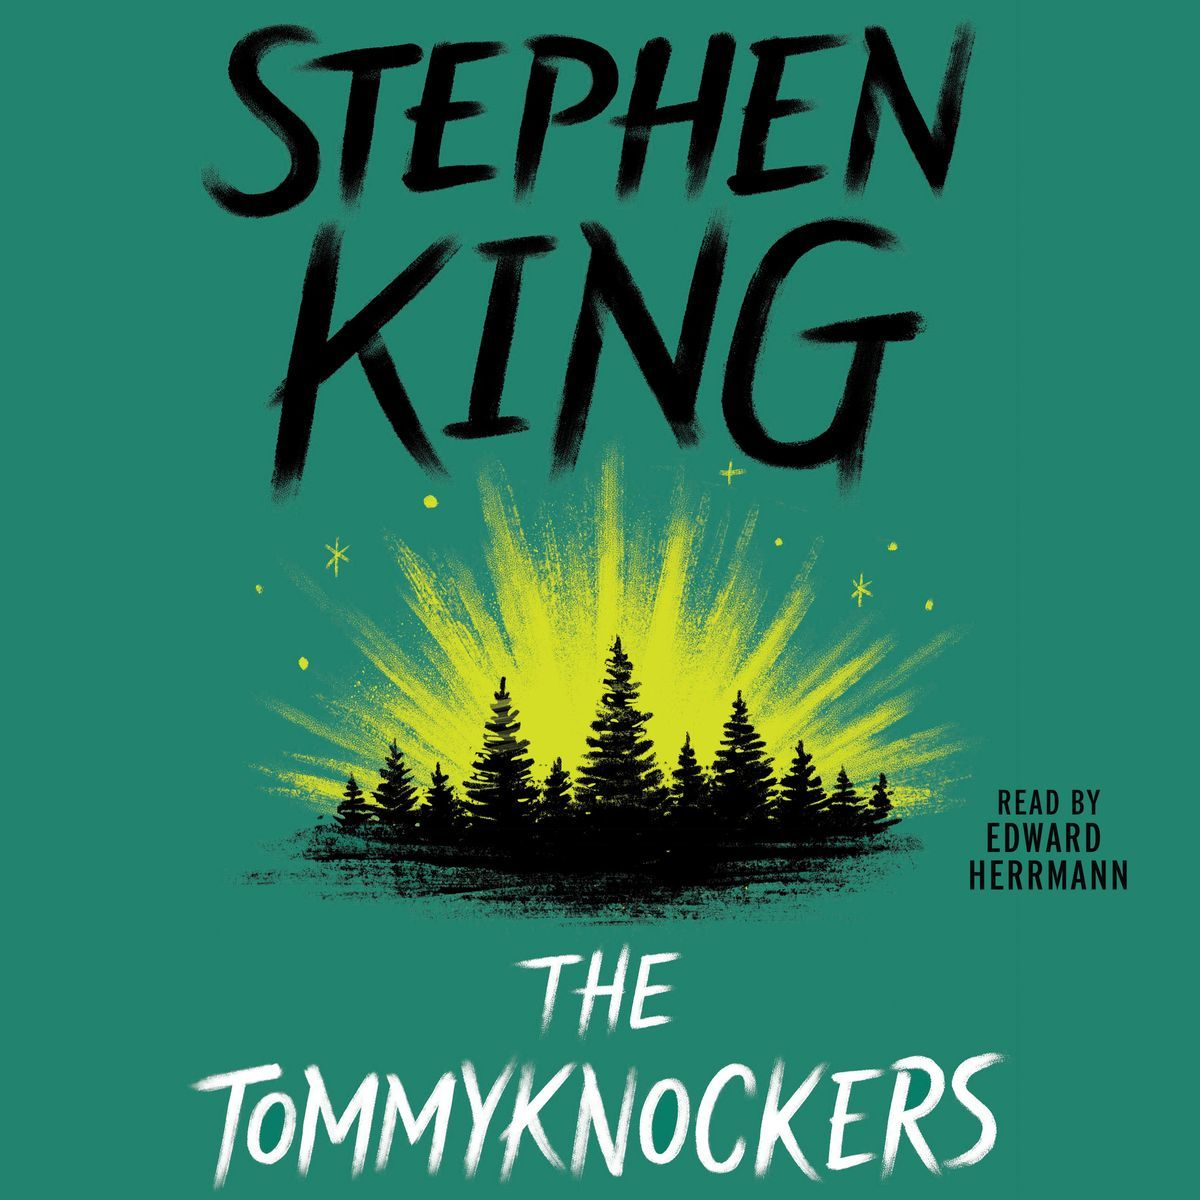 The Tommyknockers